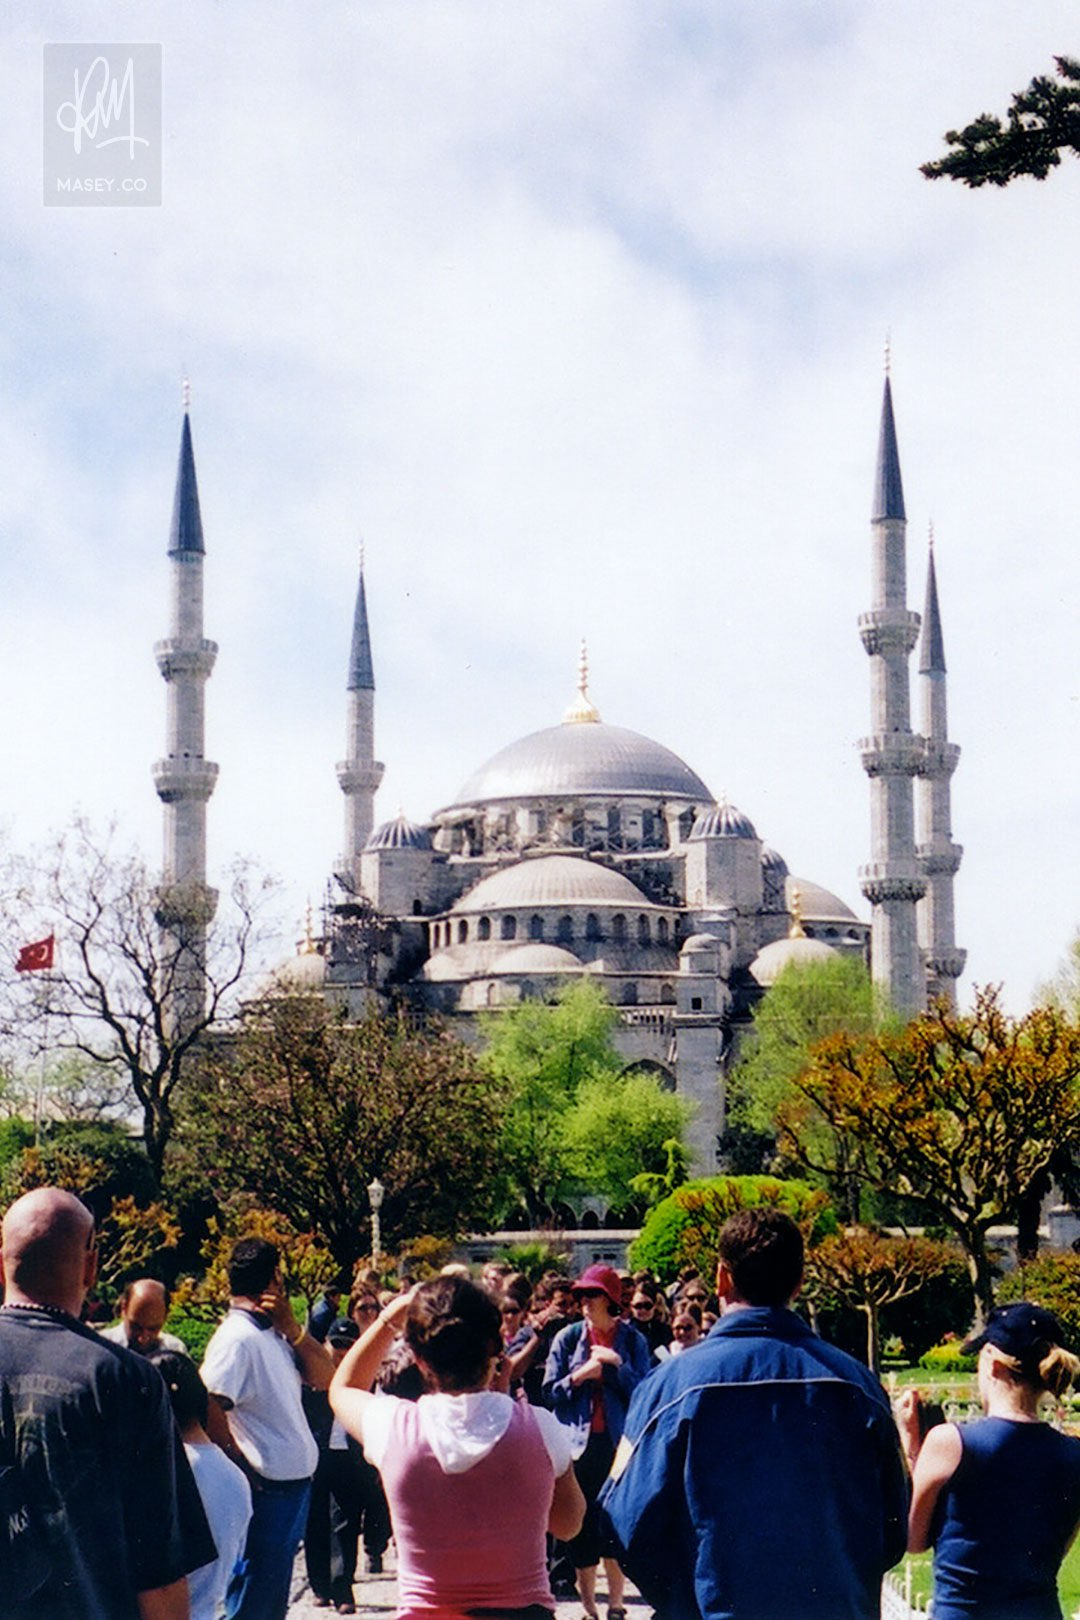 The mightily impressive Blue Mosque of Sultan Ahmet